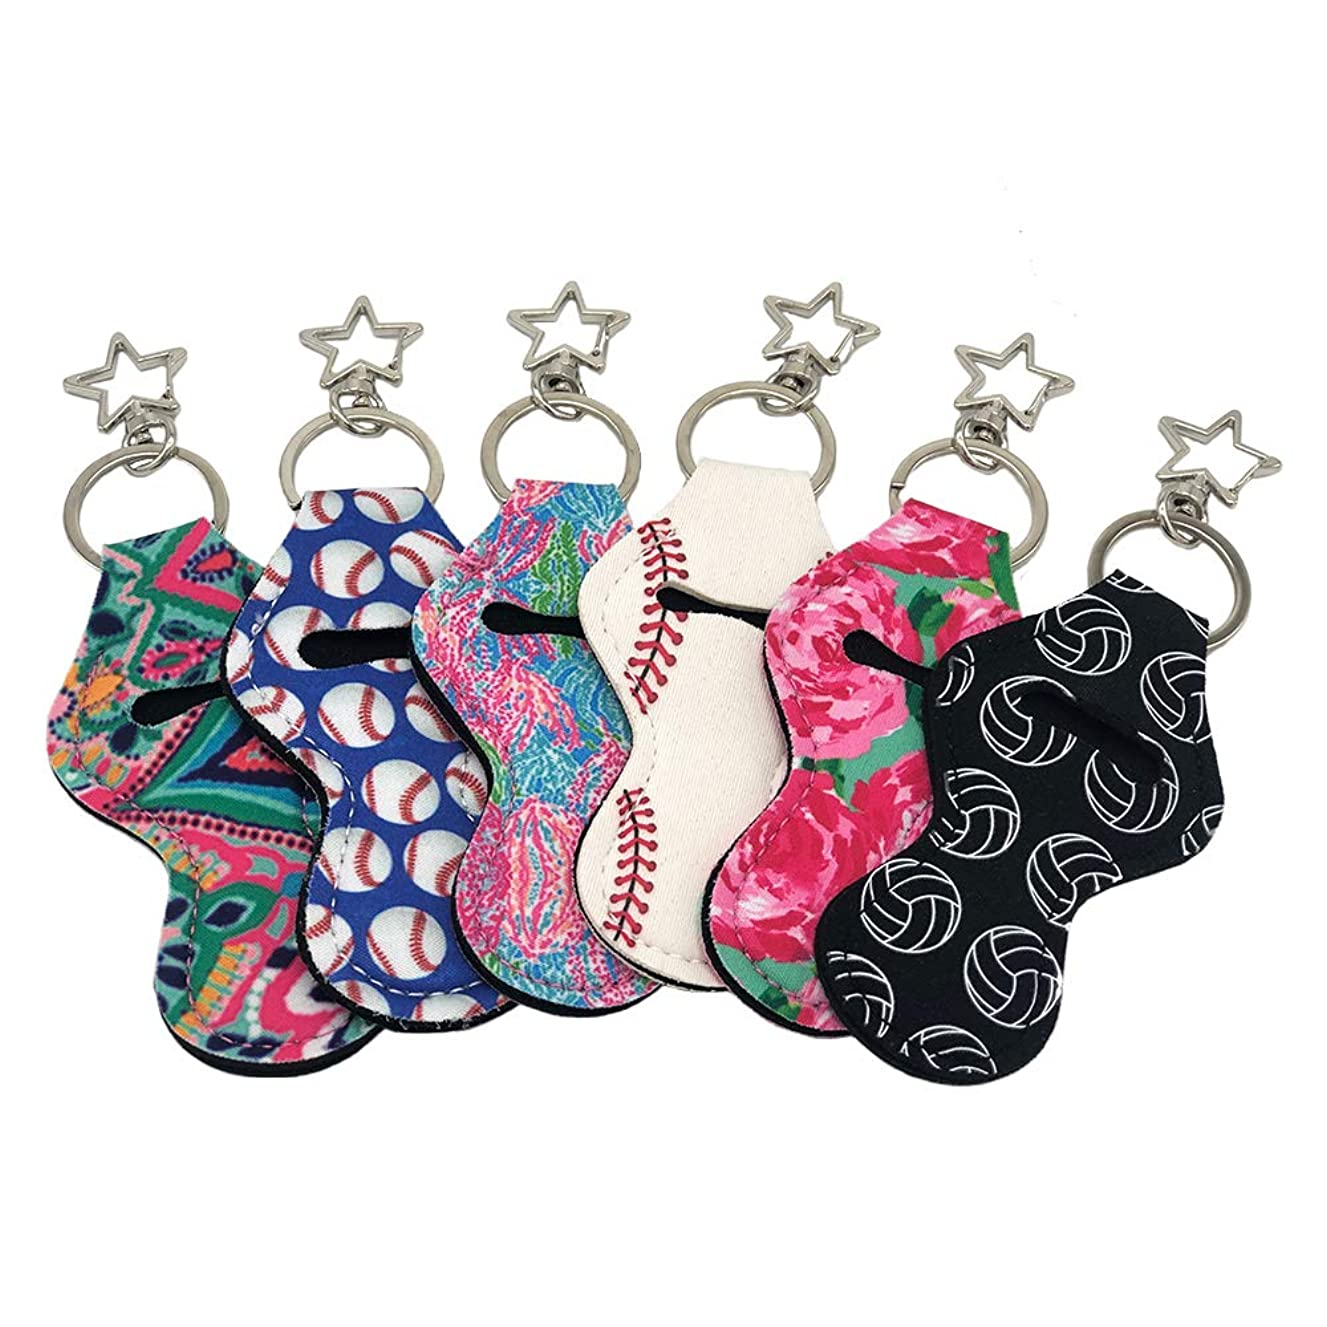 Auony Chapstick Holder Keychain, 6 Pack Lilly Printed Inspired Neoprene Chapstick Pouch Keychain Lip Balm Holder with Pentagram keychain